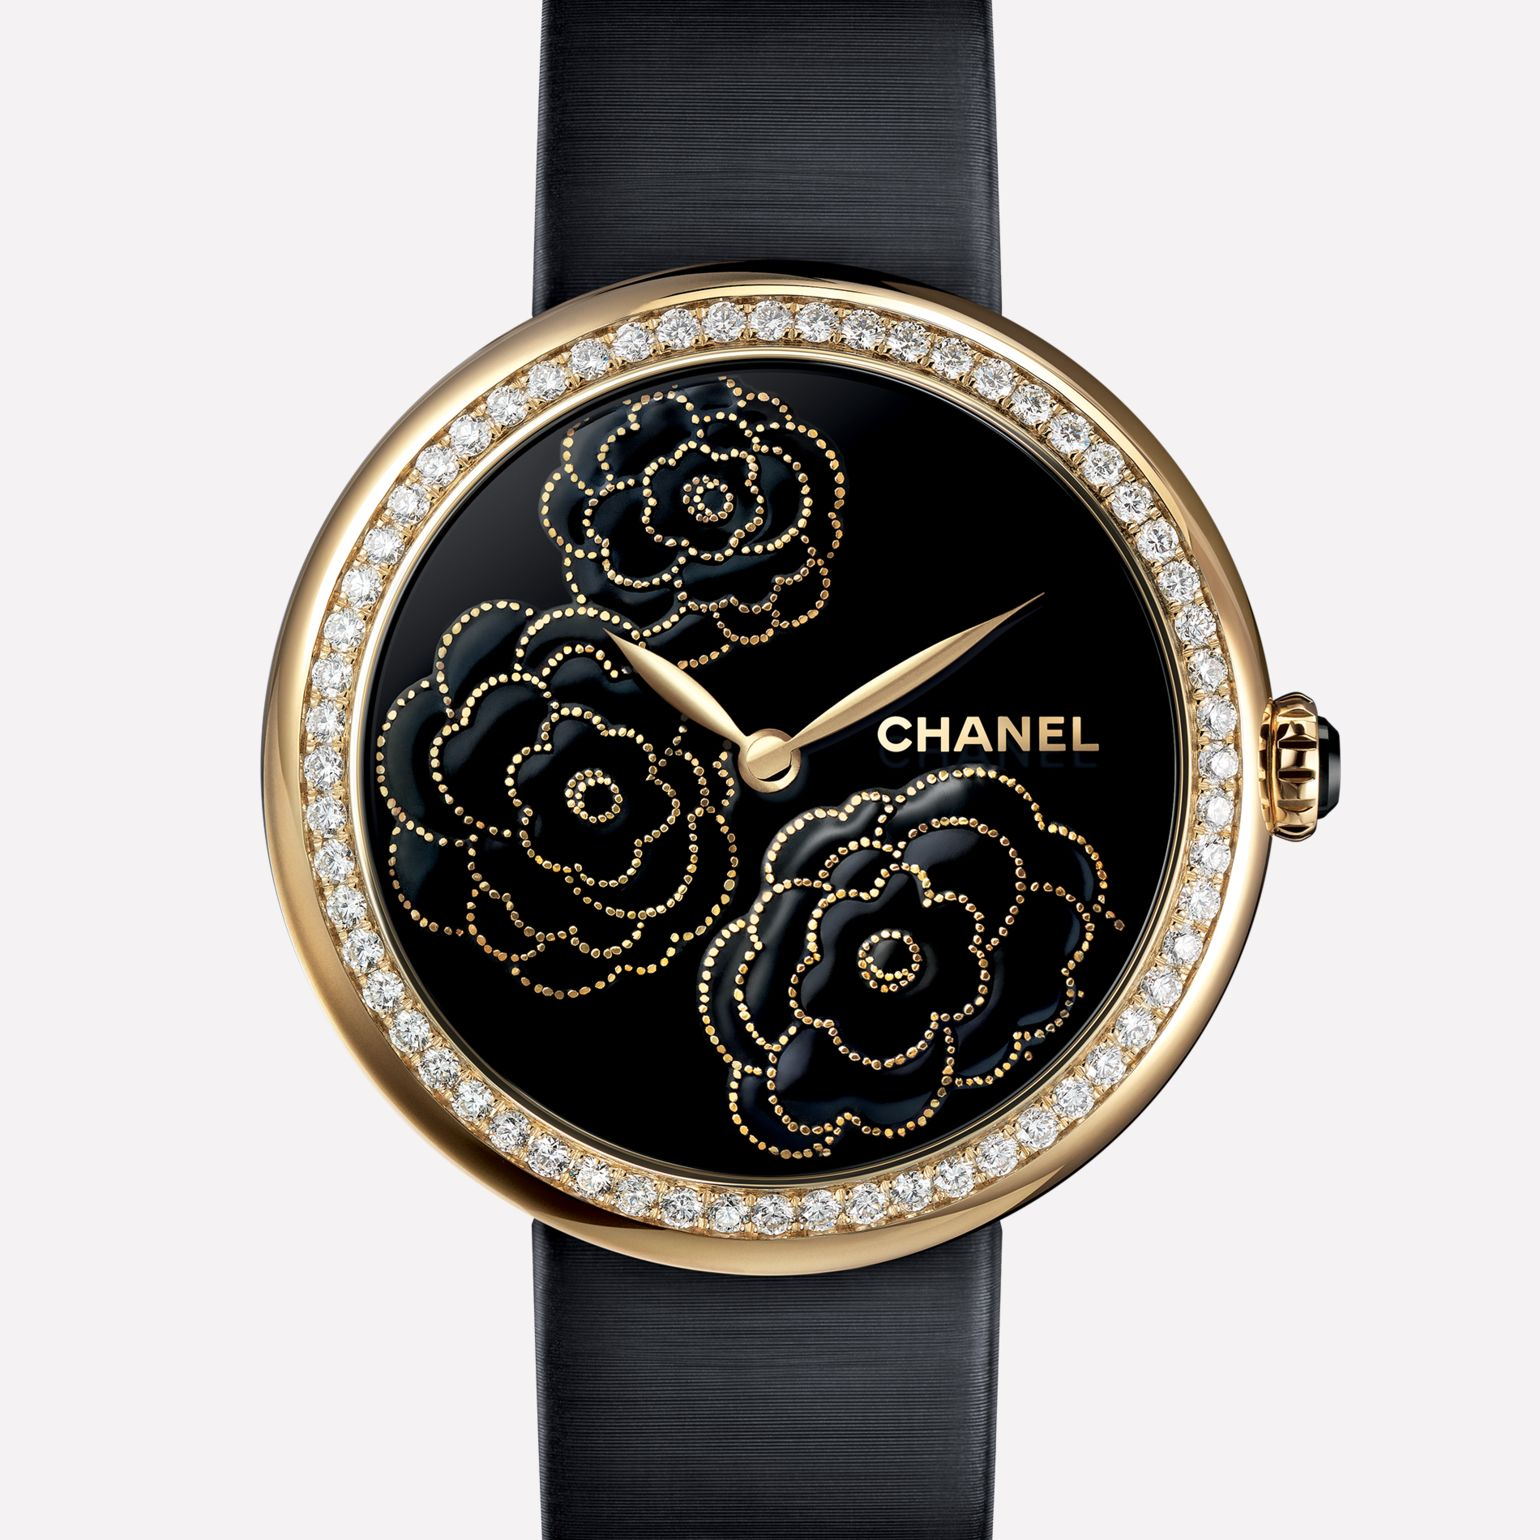 Mademoiselle Privé Yellow gold camellias, black lacquer dial - Maki-e technique